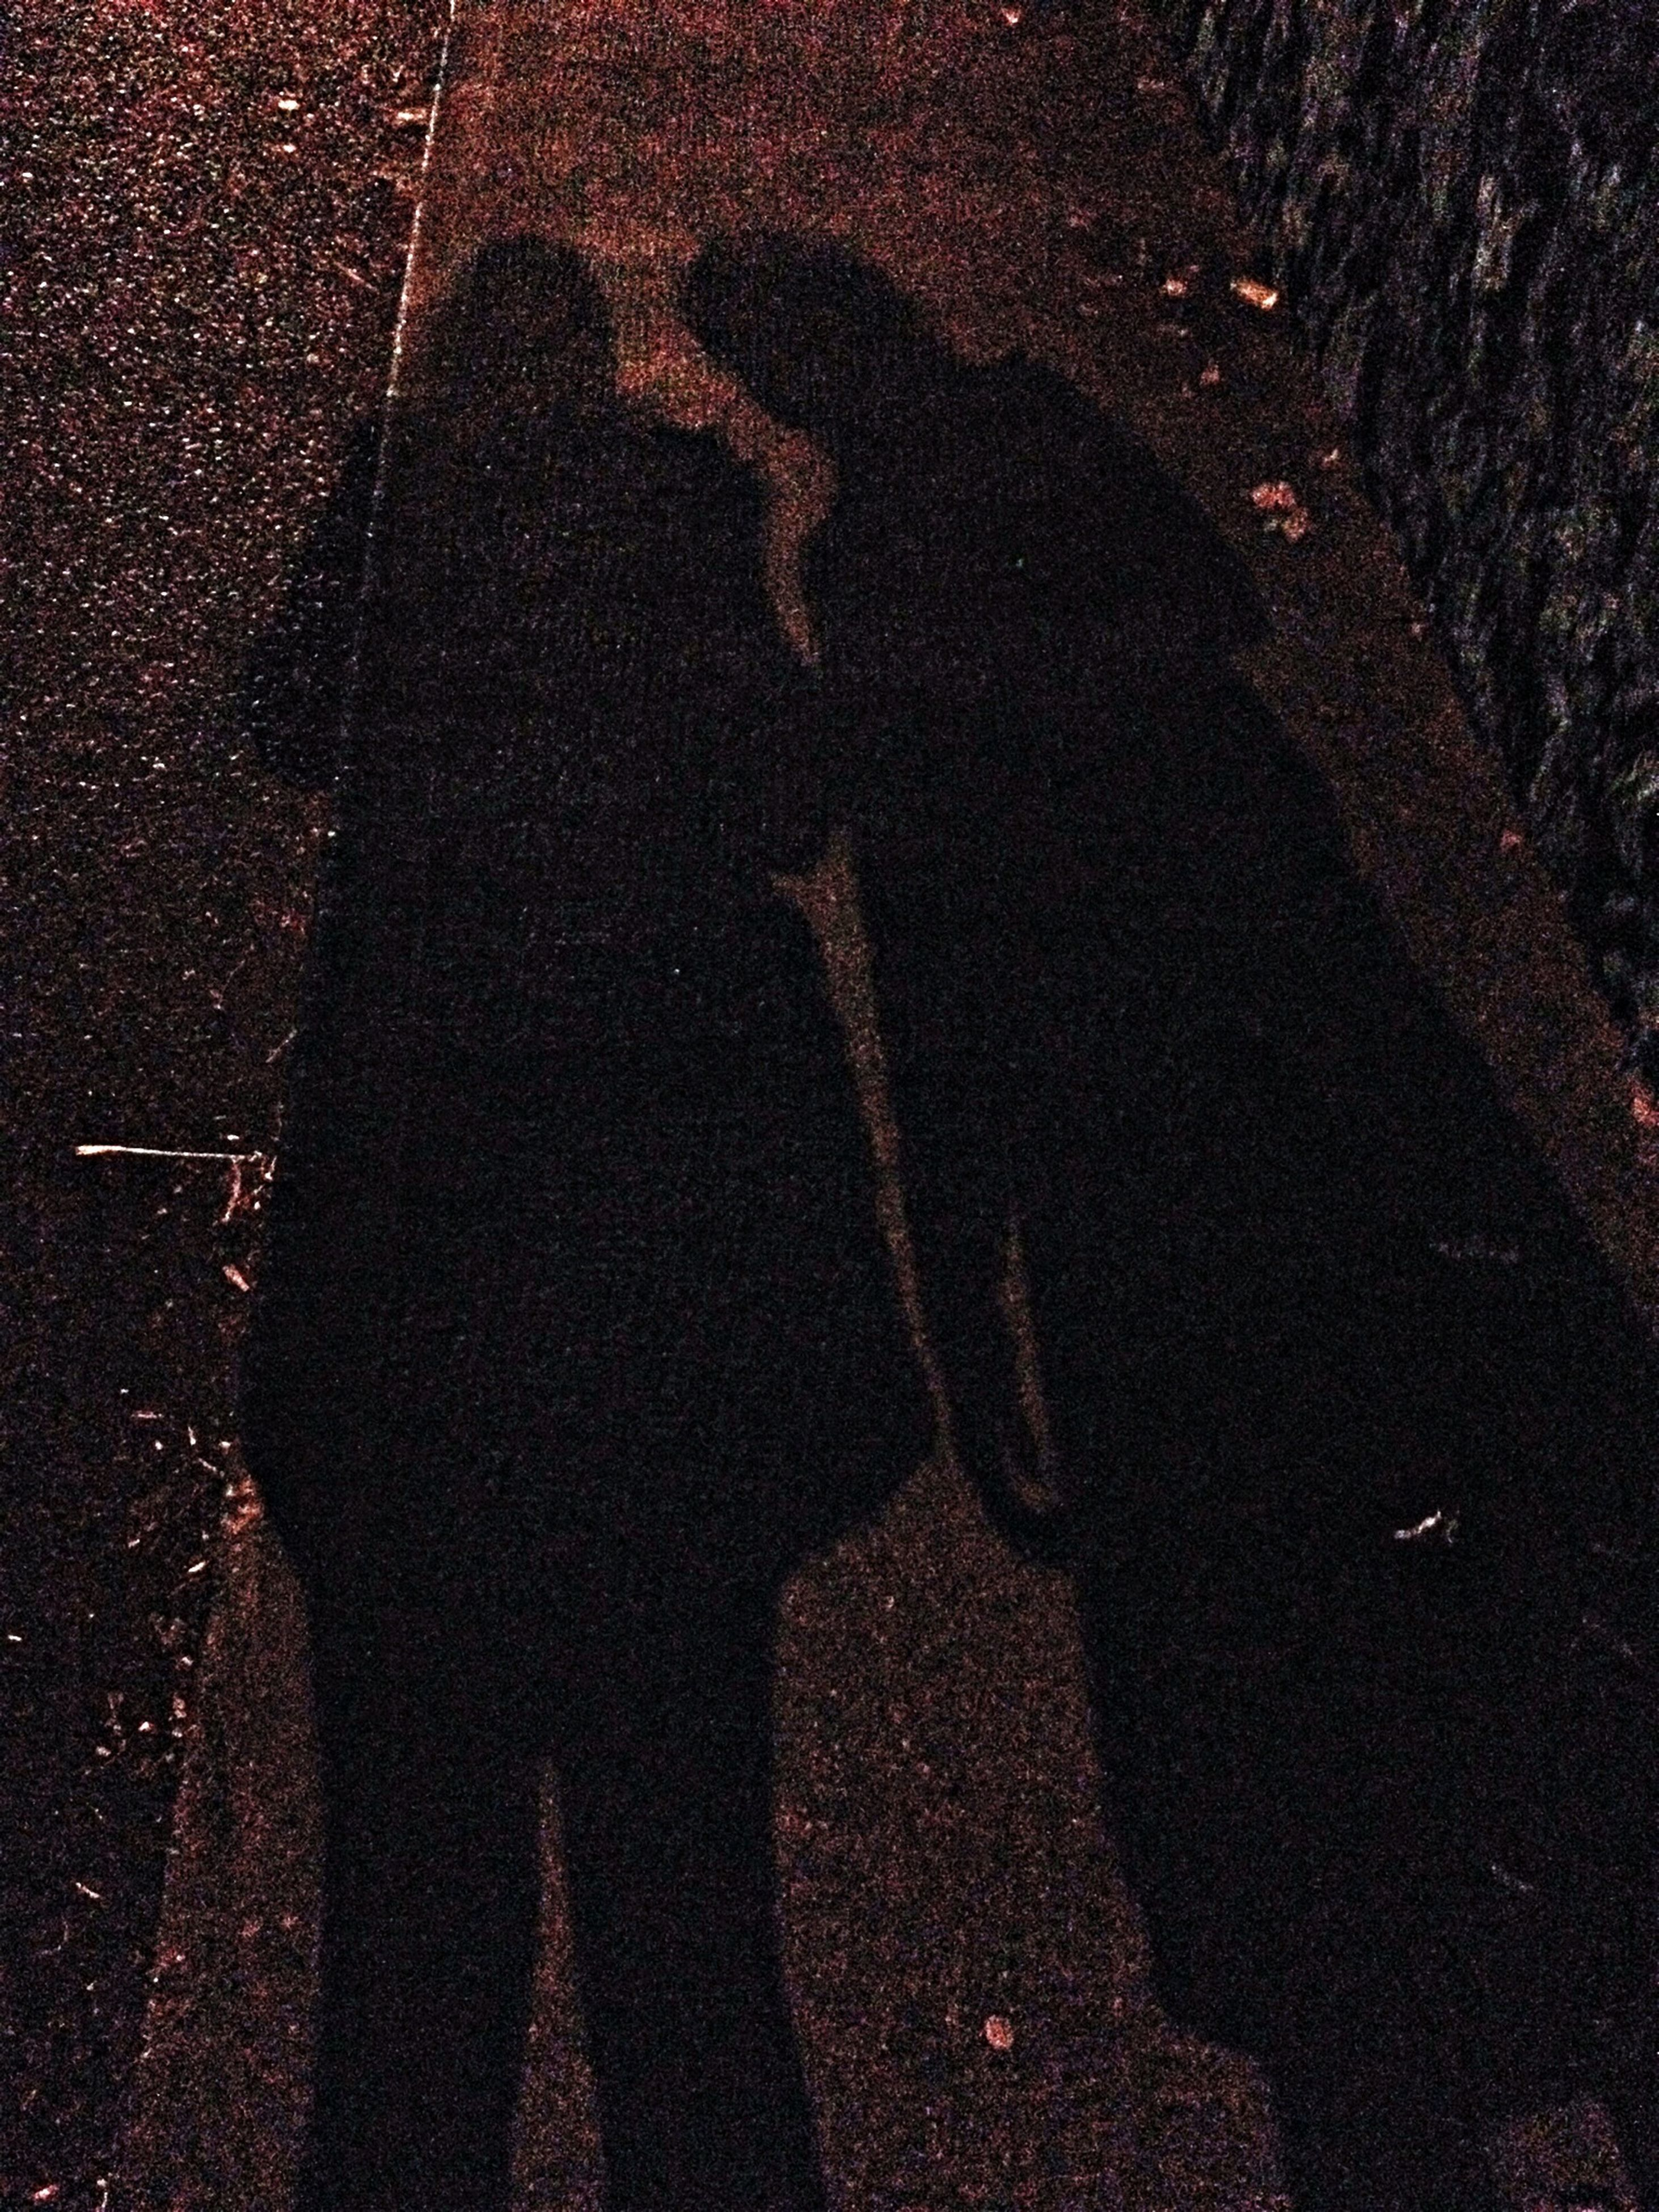 high angle view, night, street, lifestyles, leisure activity, shadow, men, unrecognizable person, road, focus on shadow, standing, dark, outdoors, silhouette, person, asphalt, transportation, sunlight